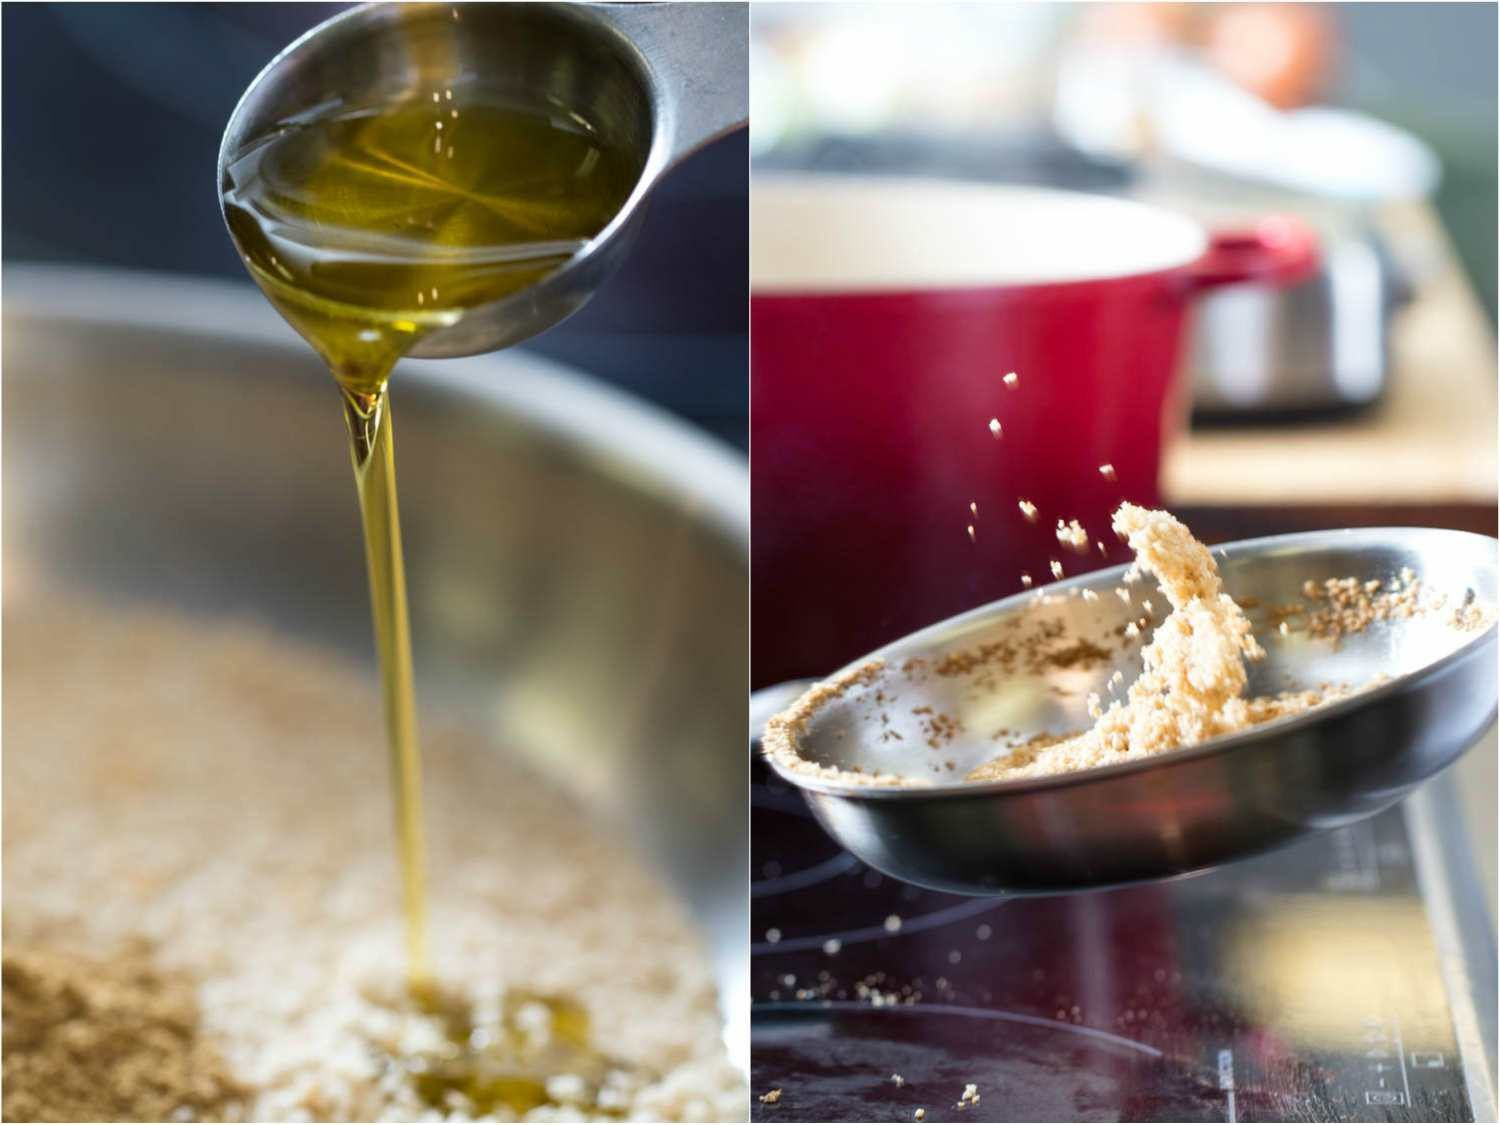 A side by side collage of two photos, drizzling olive oil over breadcrumbs and then tossing toasted breadcrumbs in a skillet.